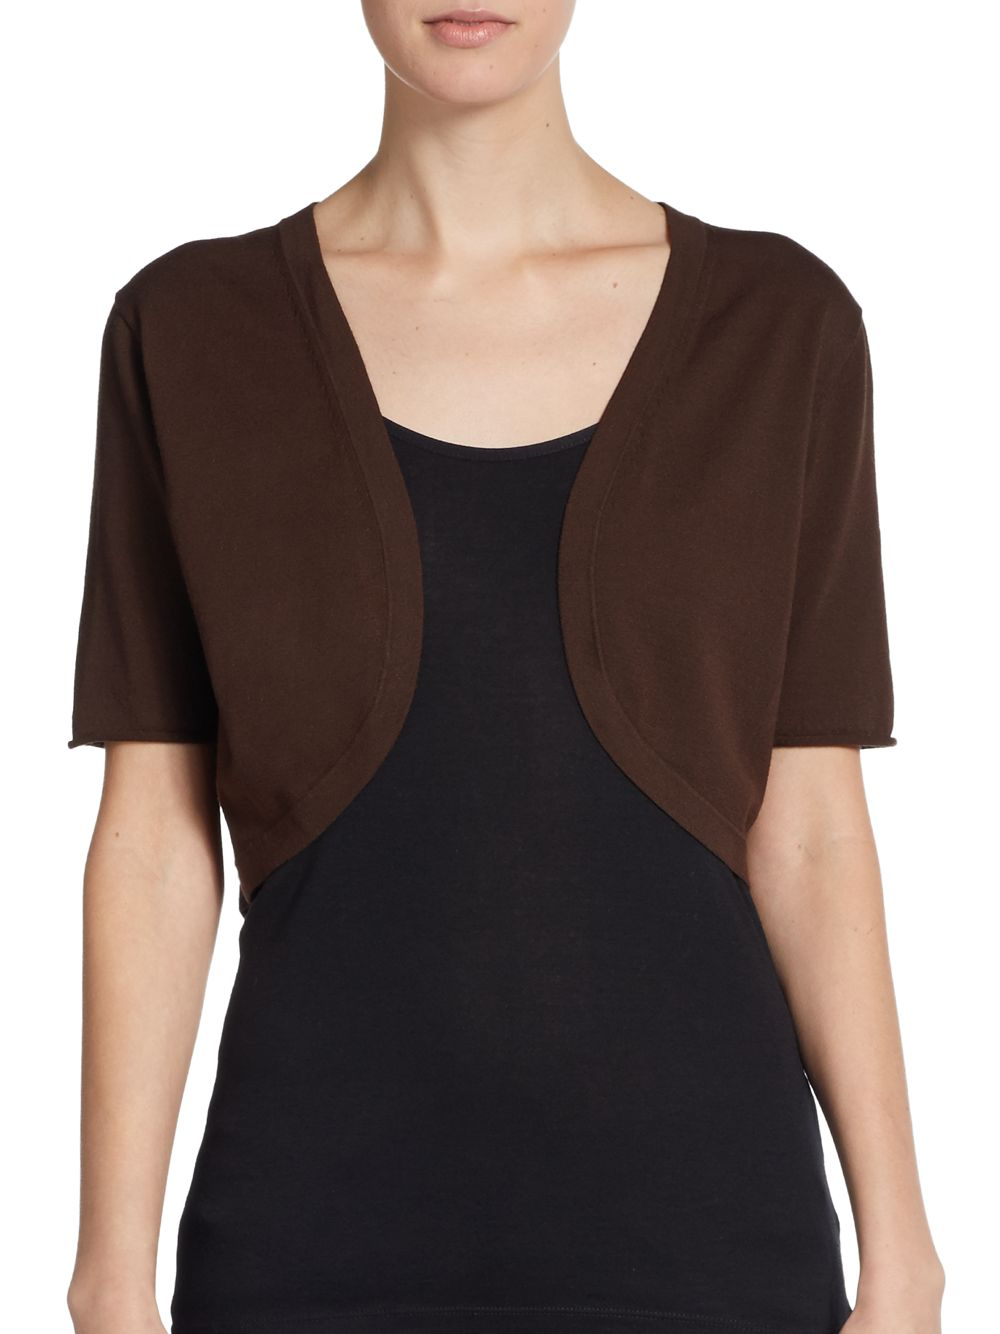 Shop for brown shrug sweater online at Target. Free shipping on purchases over $35 and save 5% every day with your Target REDcard.